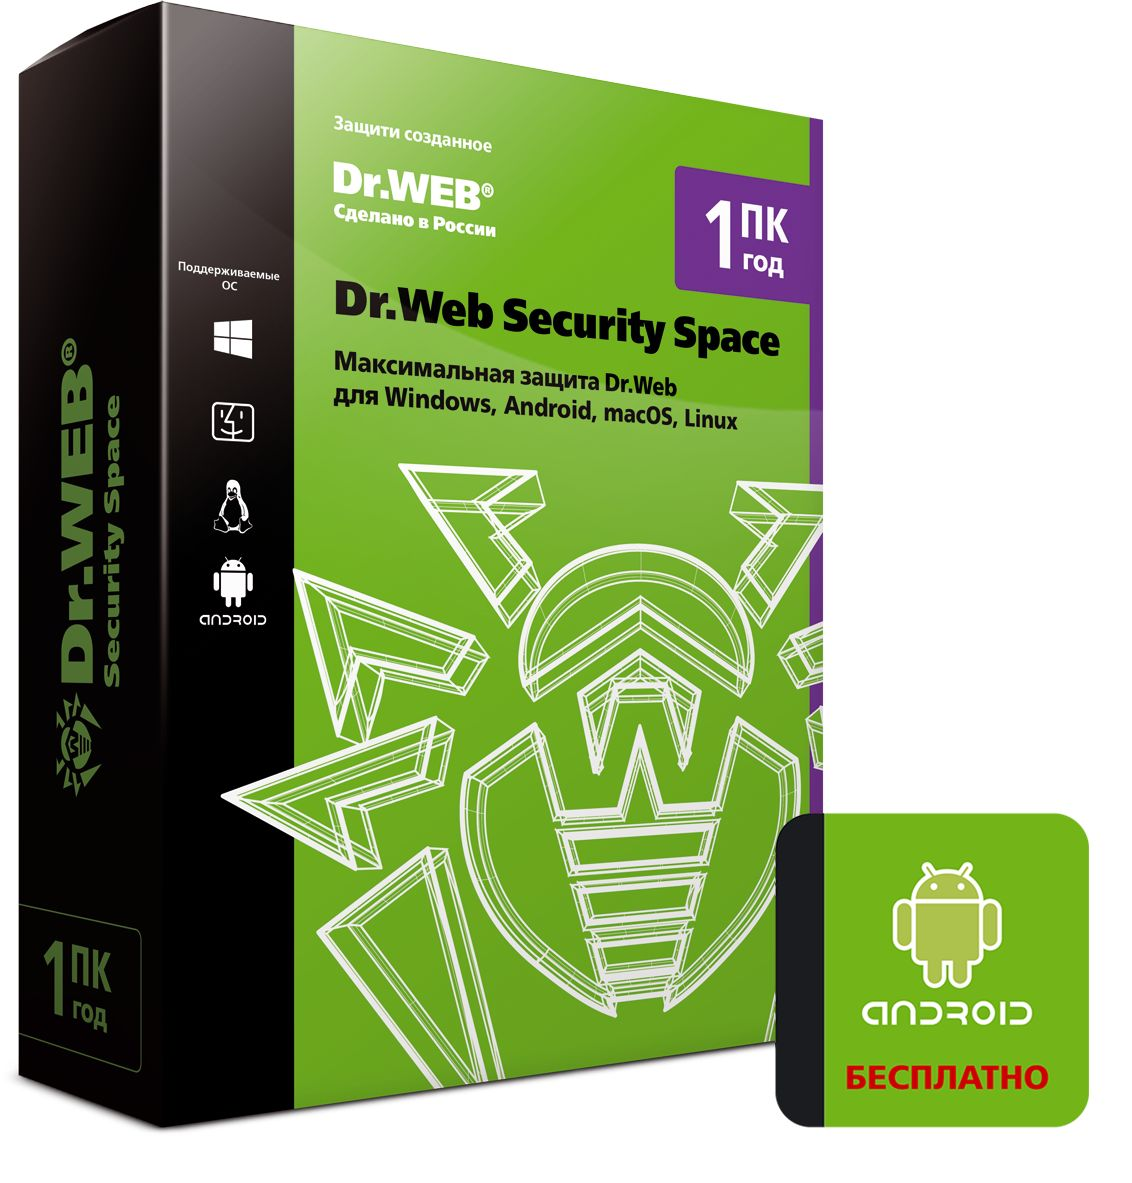 Антивирус Dr.Web Security Space на 1 год на 1 ПК [BHW-B-12M-1-A3] (Box) фото